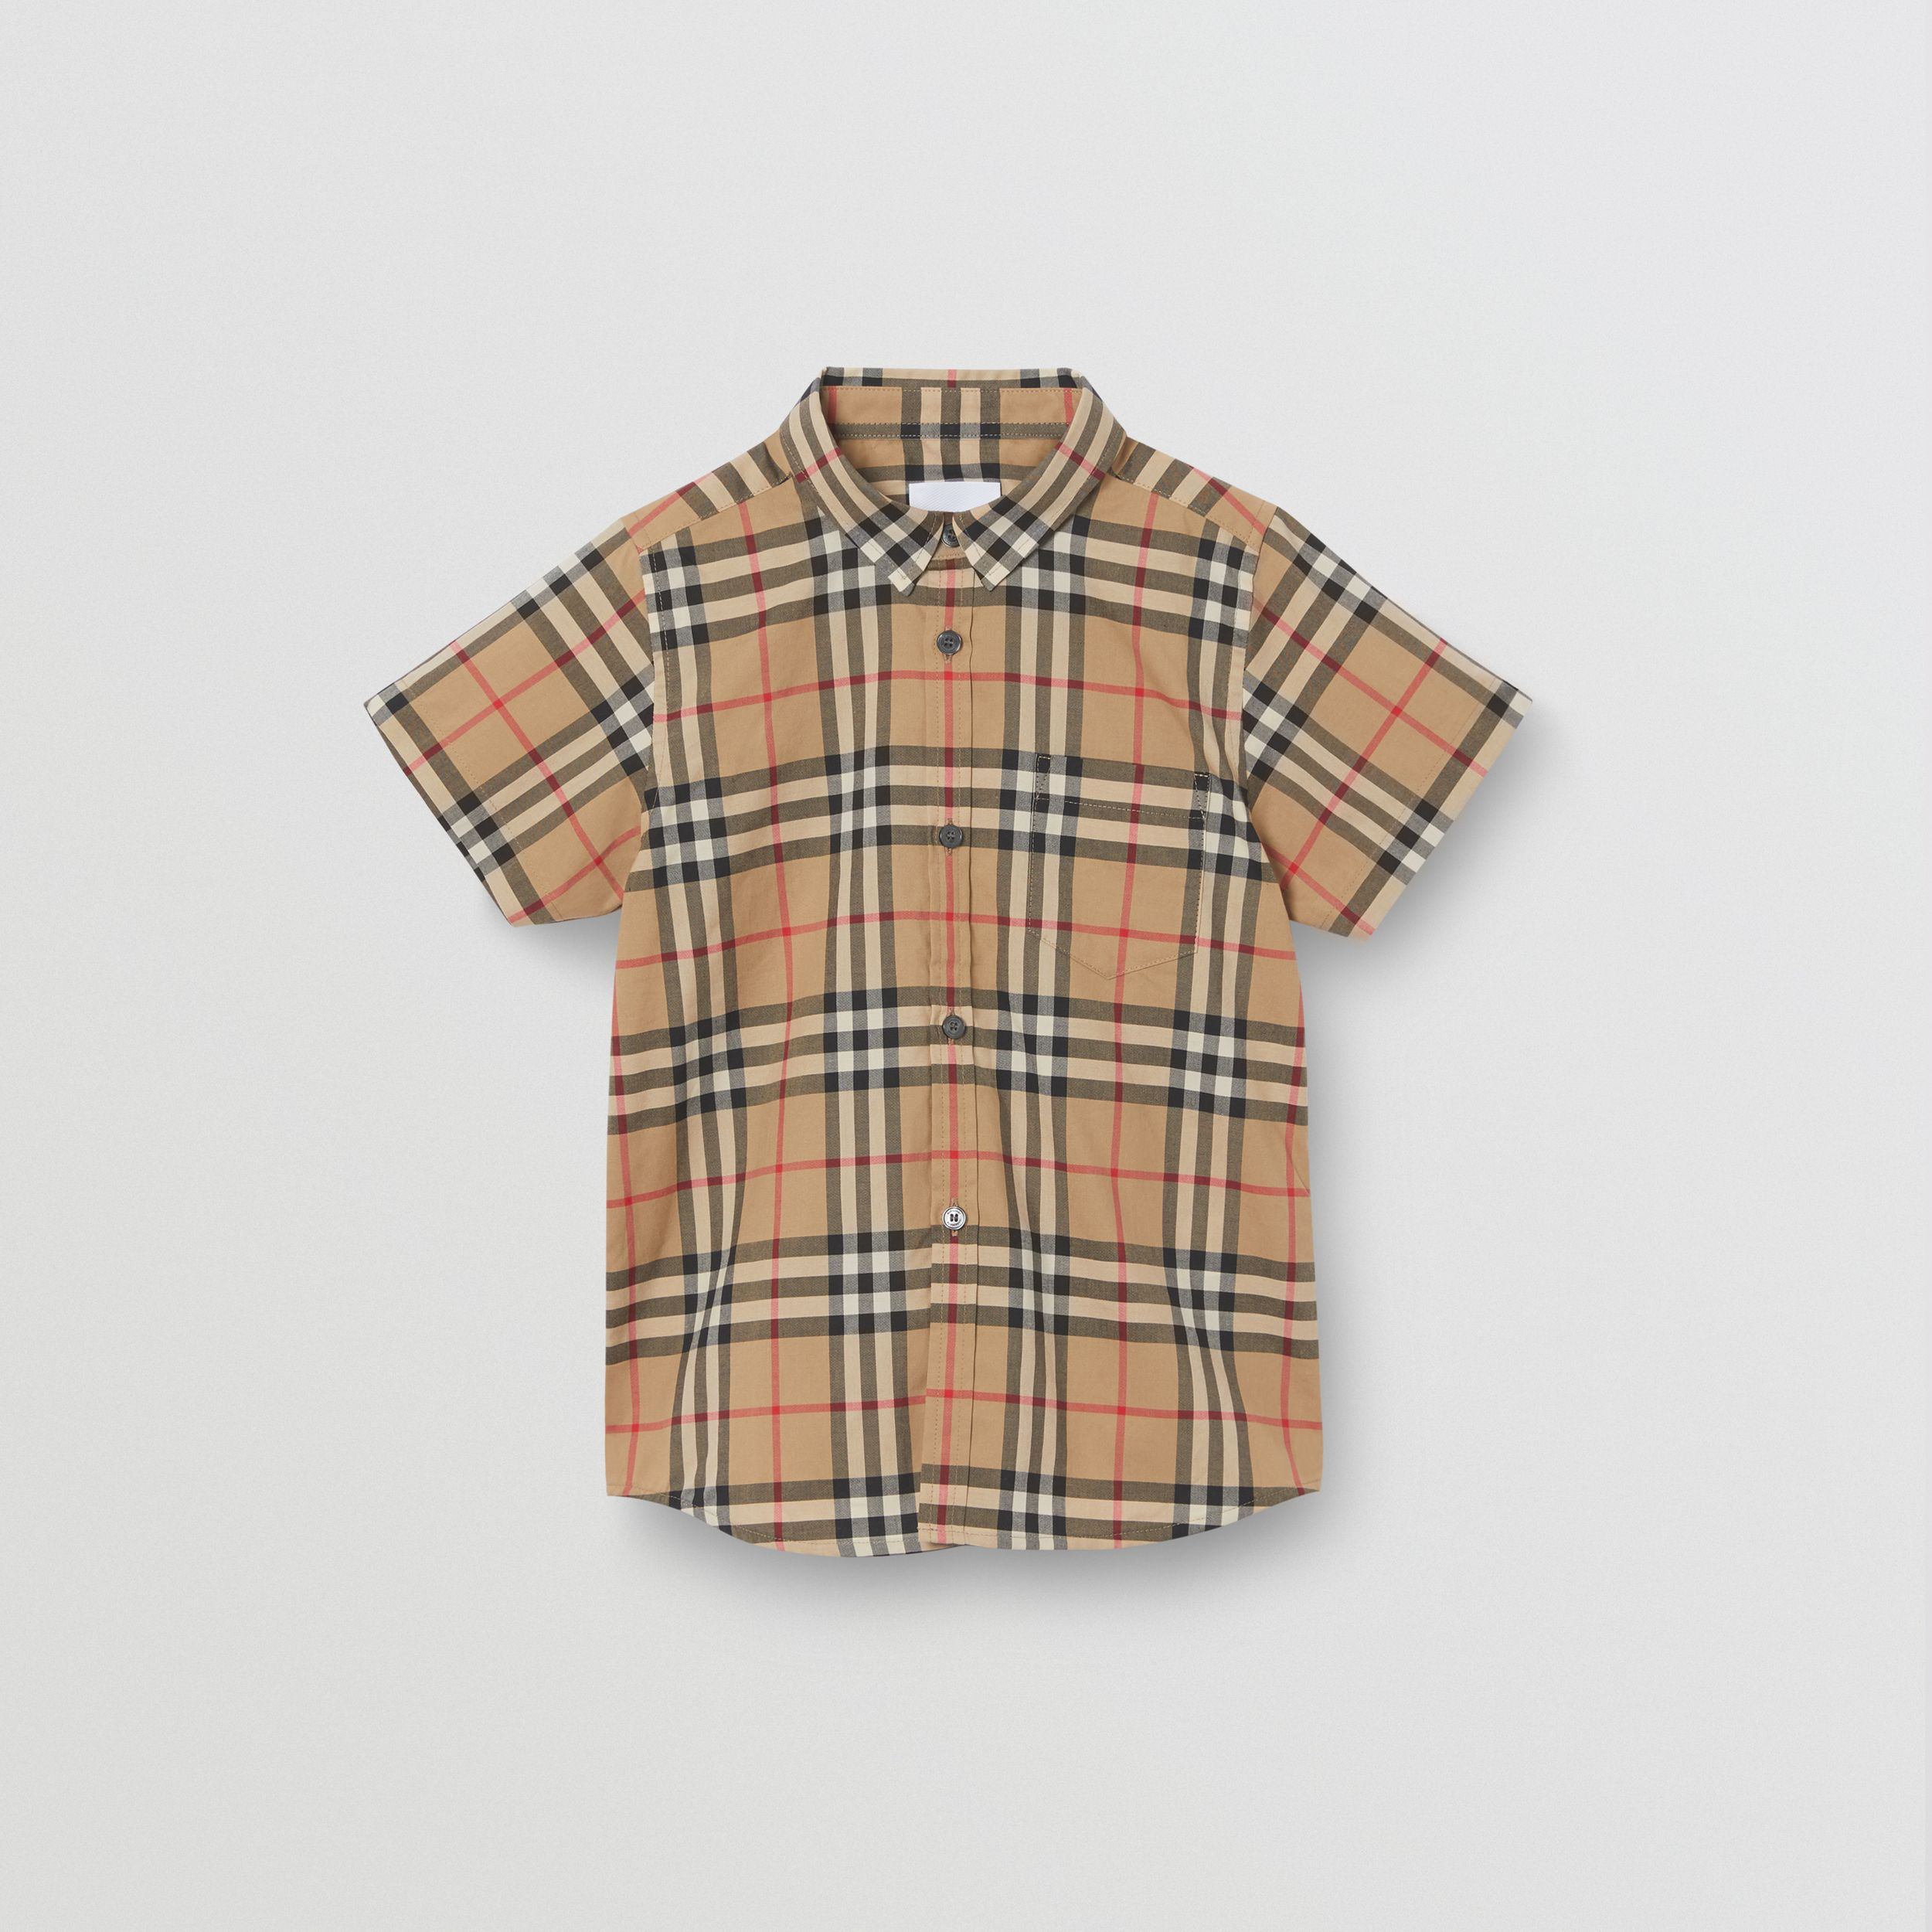 Short-sleeve Vintage Check Cotton Shirt in Archive Beige | Burberry United Kingdom - 1